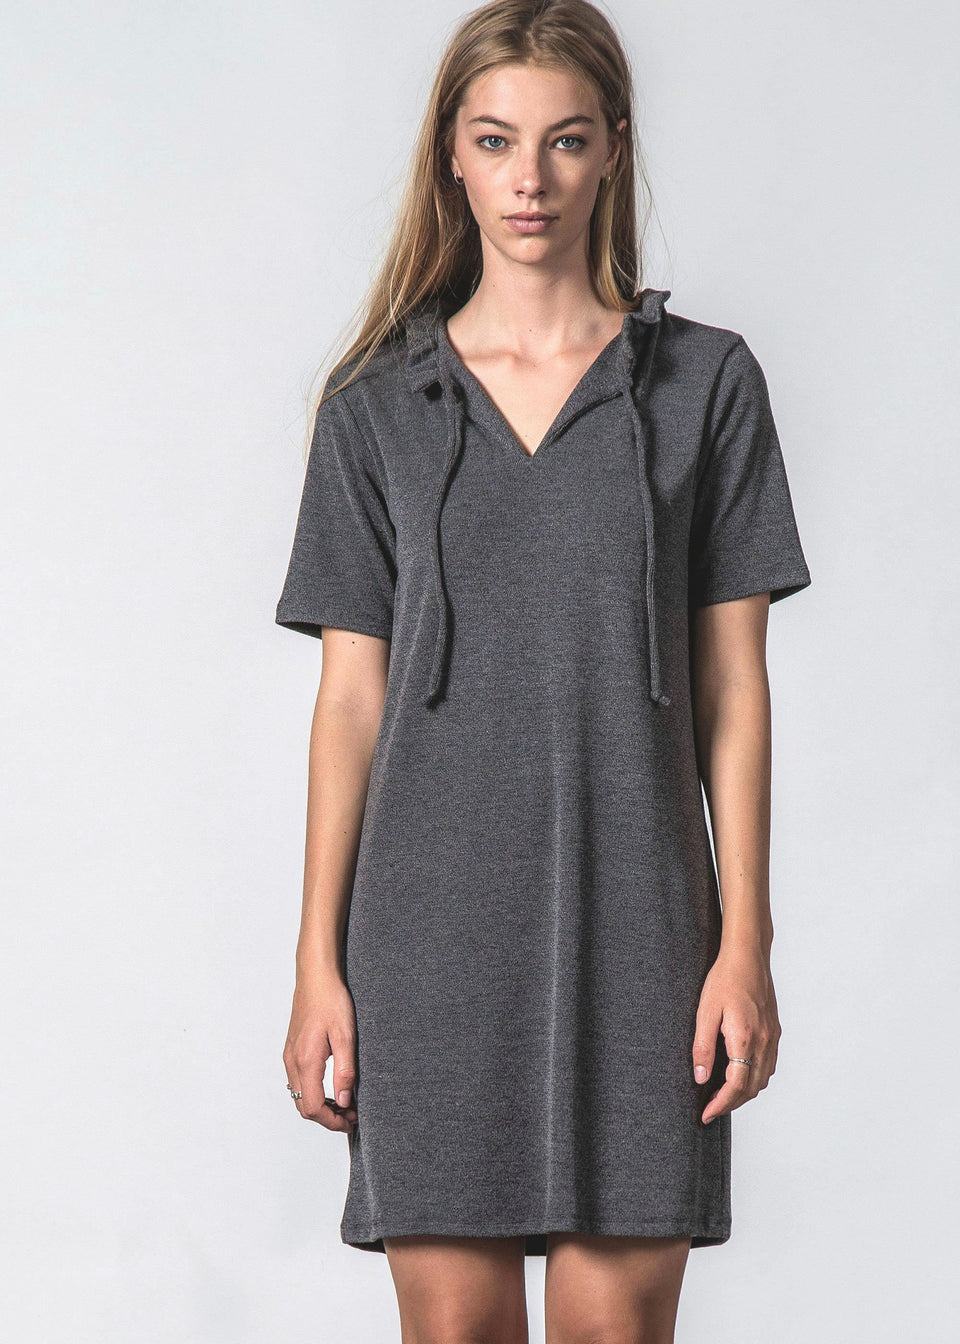 Swirl Tee Dress - Saint Street